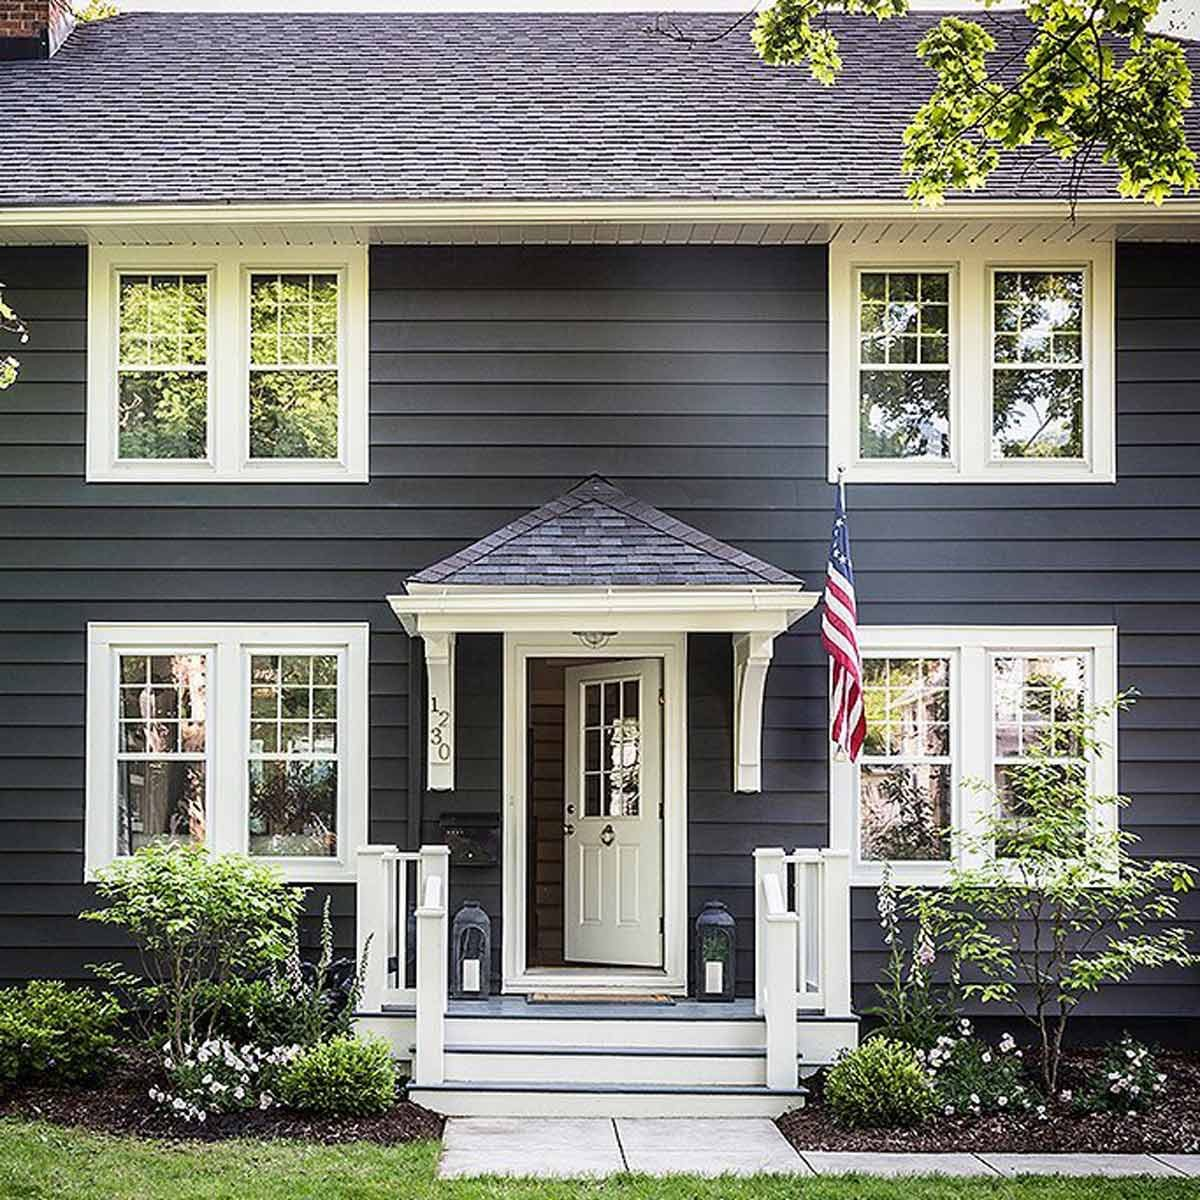 Curb Appeal Ideas: 15 House Painting Ideas That Improve Curb Appeal